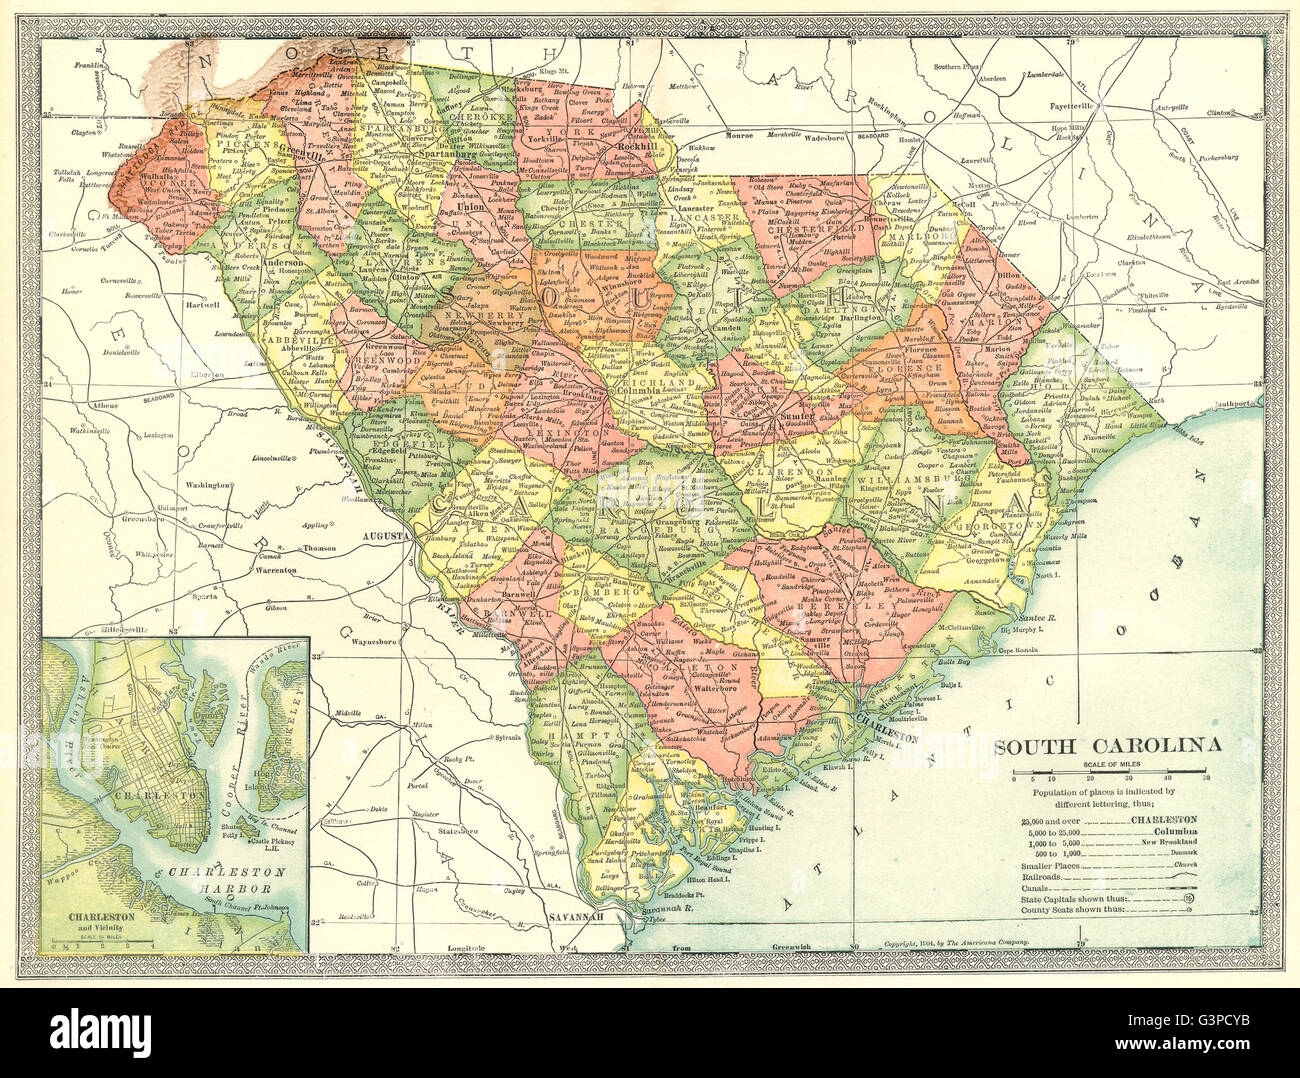 SOUTH CAROLINA state map. Counties. Charleston harbour & environs ...